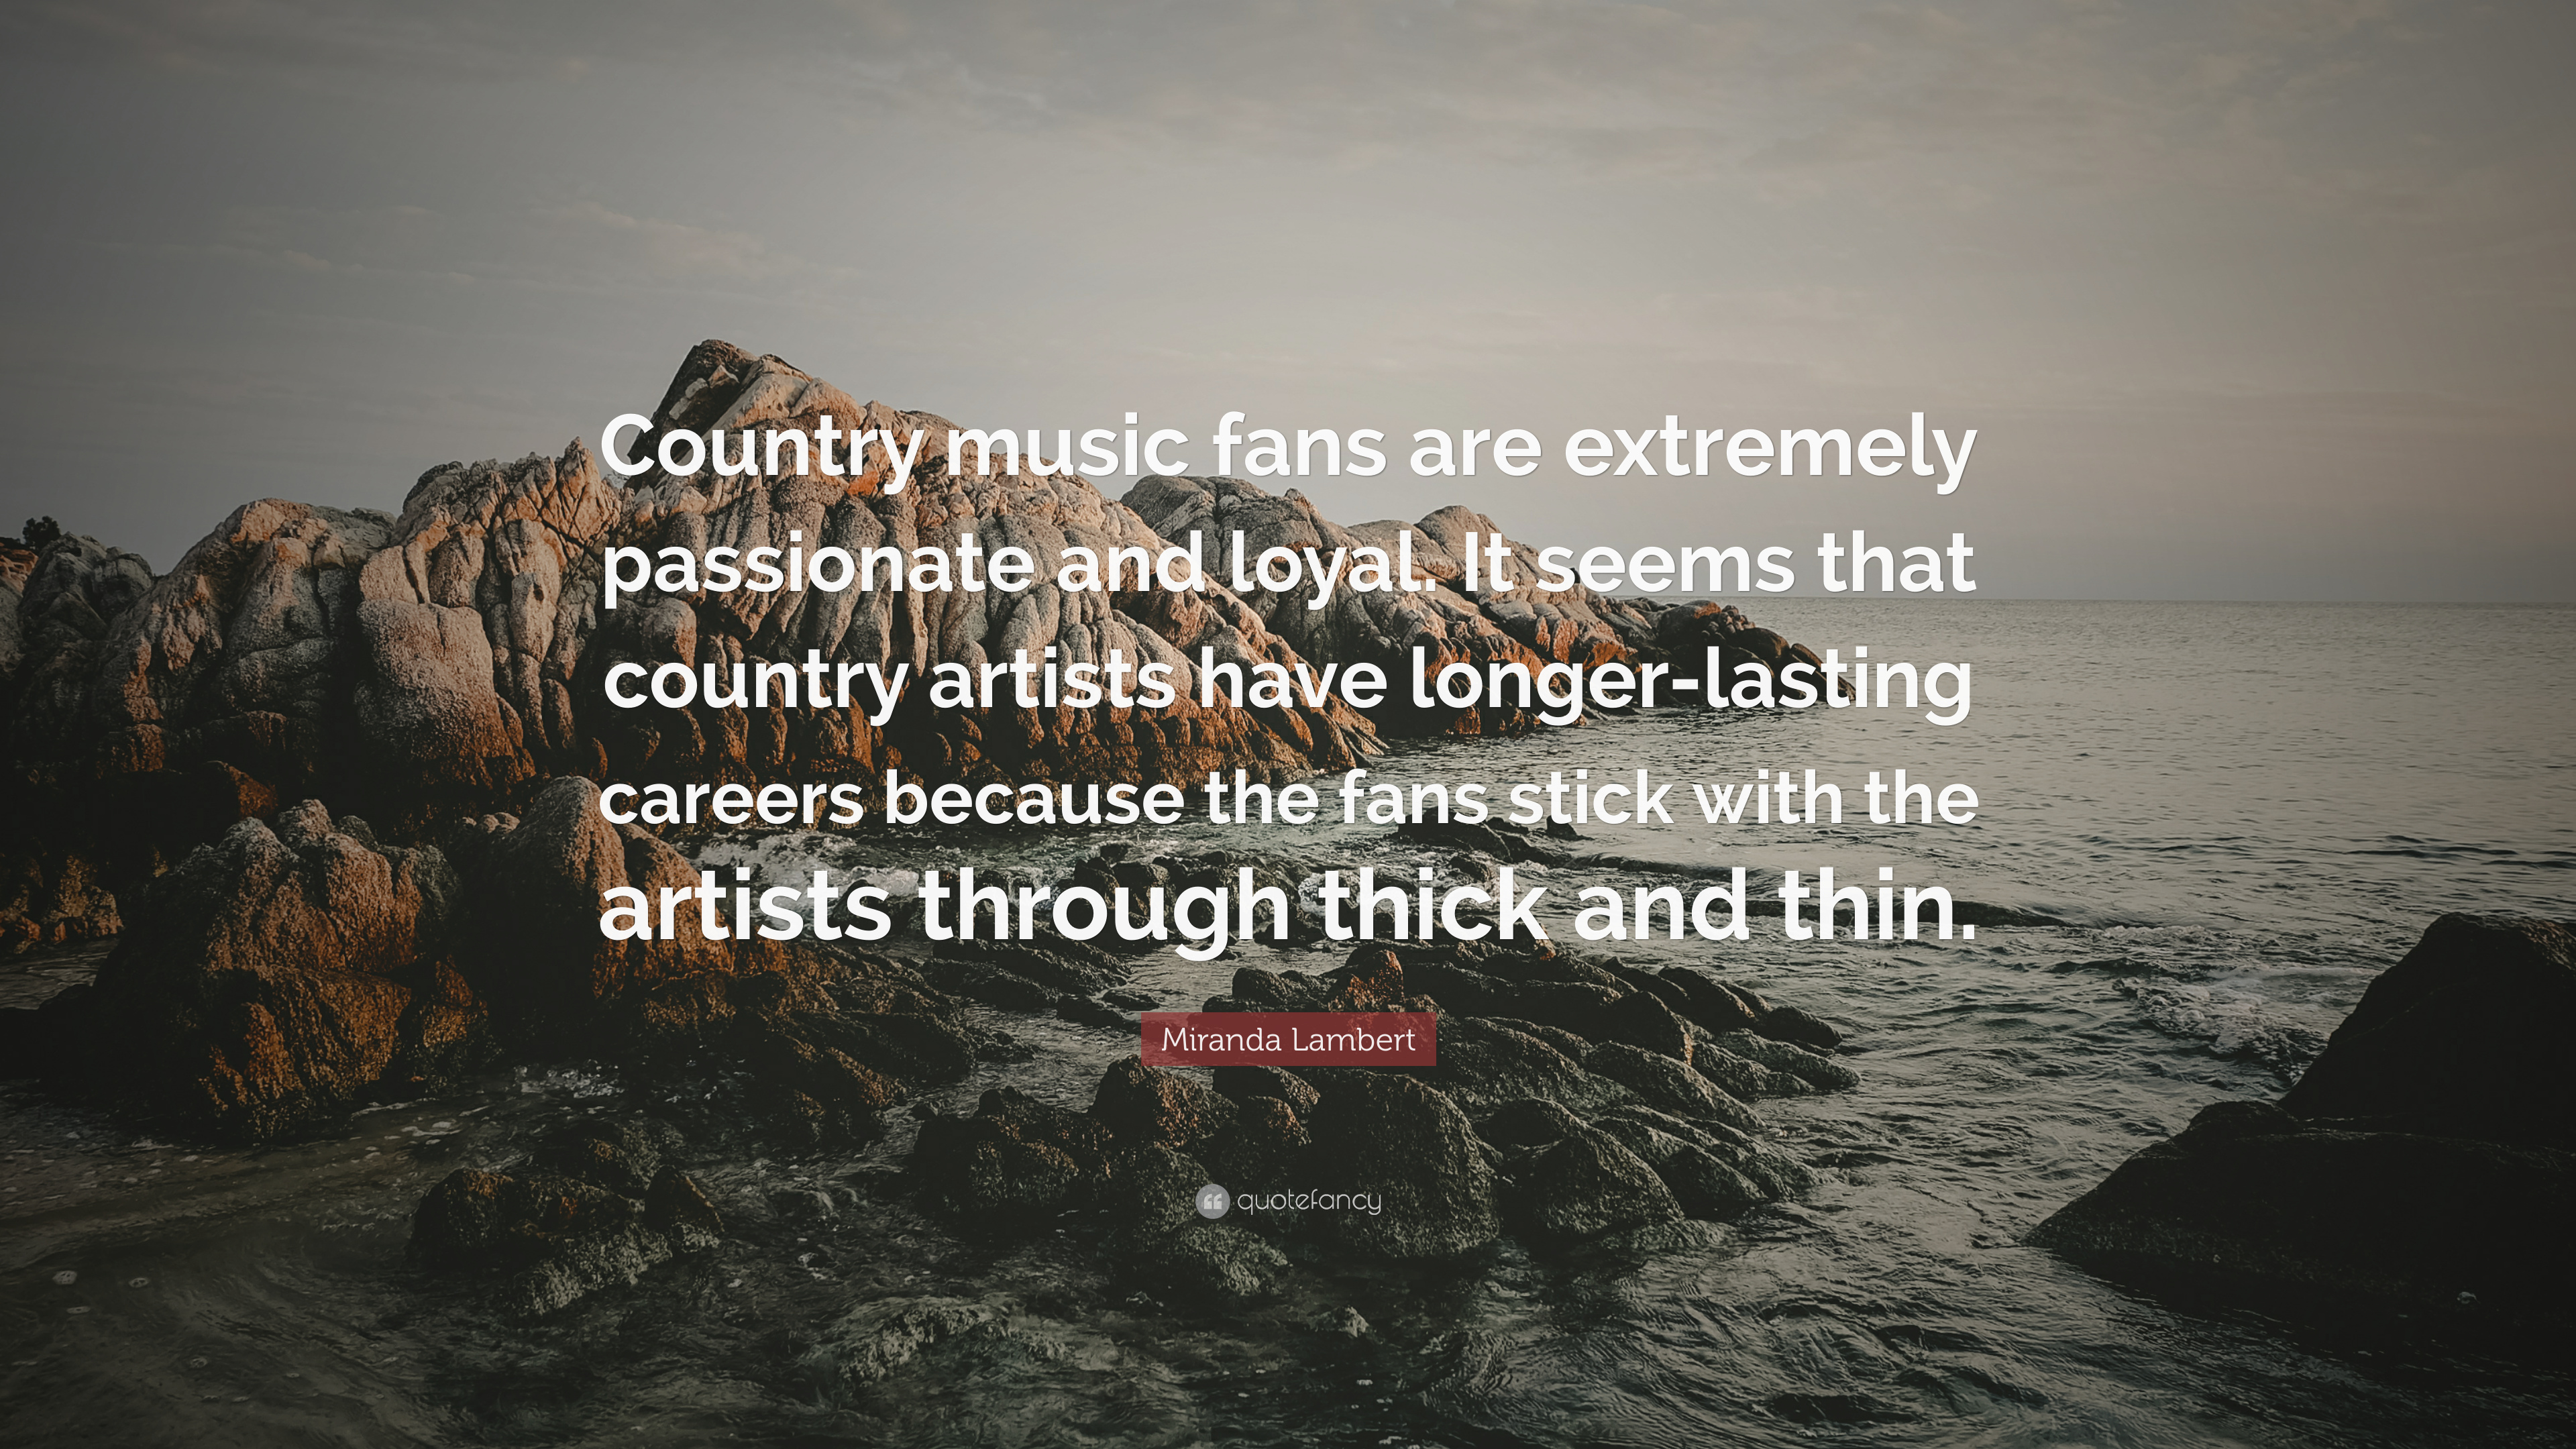 Popular Wallpaper Music Country - 3040973-Miranda-Lambert-Quote-Country-music-fans-are-extremely-passionate  You Should Have_69947.jpg